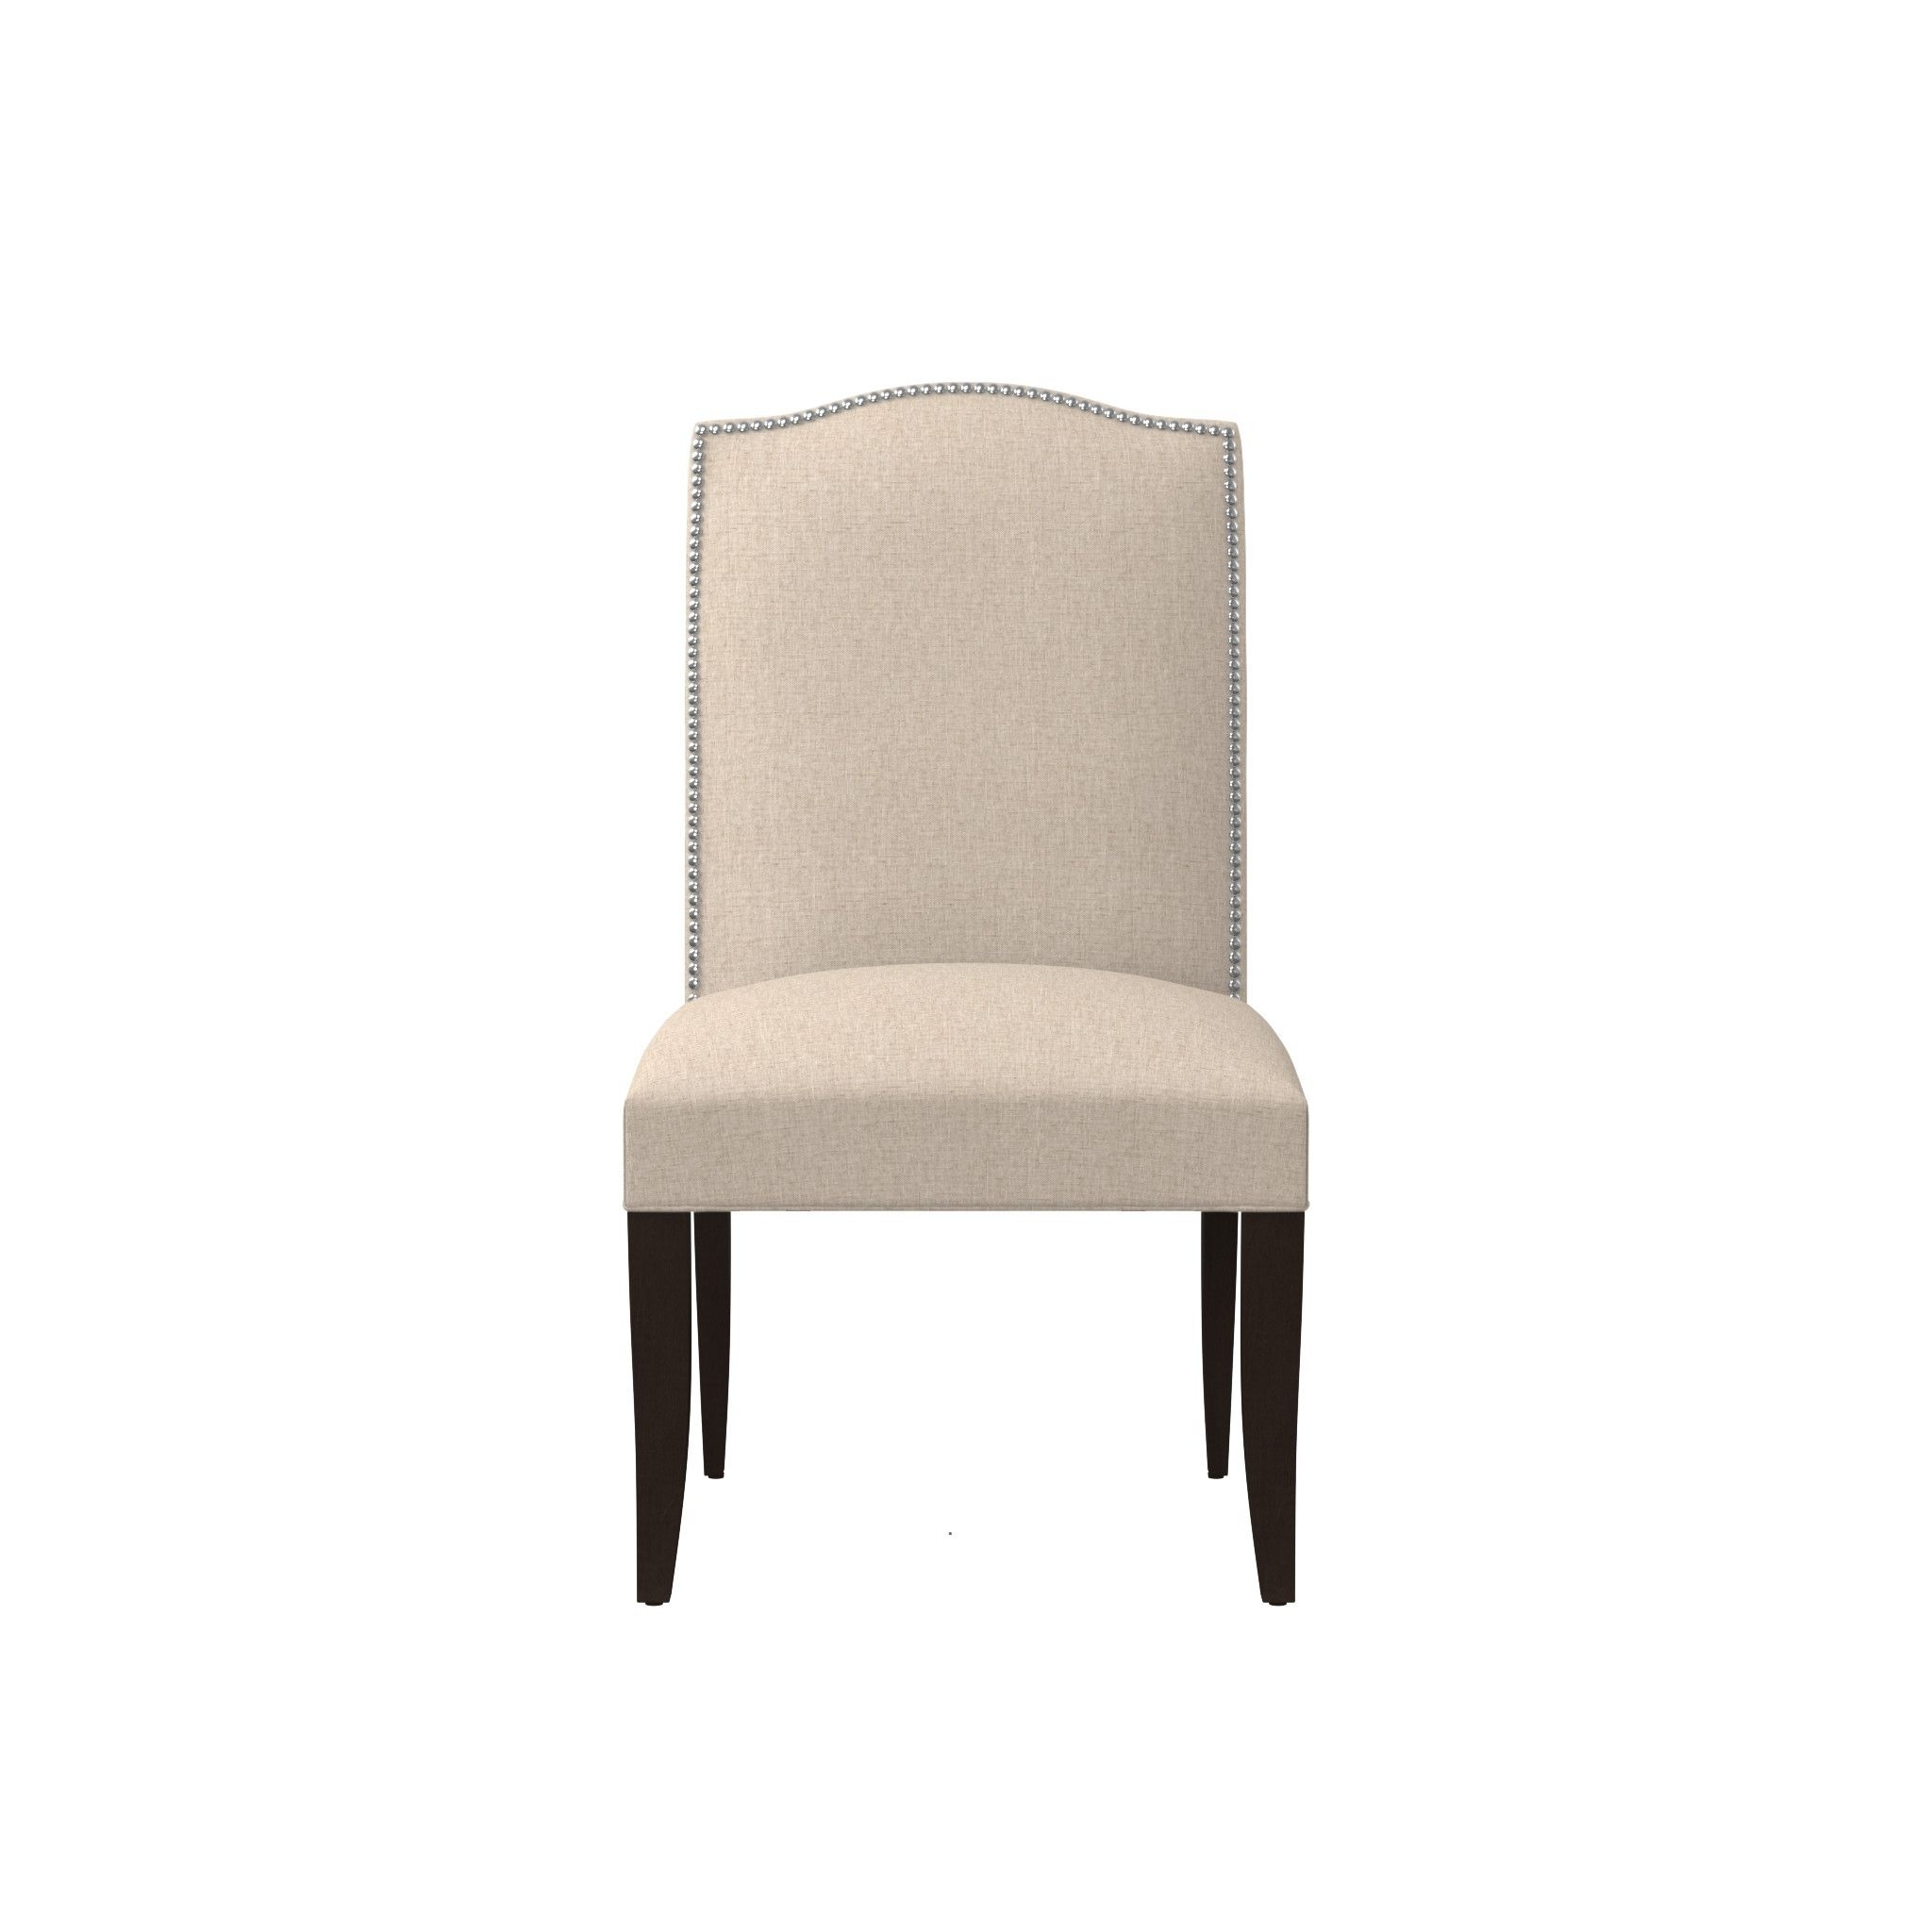 Upholstered Dining Chairs, Side Chair And Dining (View 19 of 20)